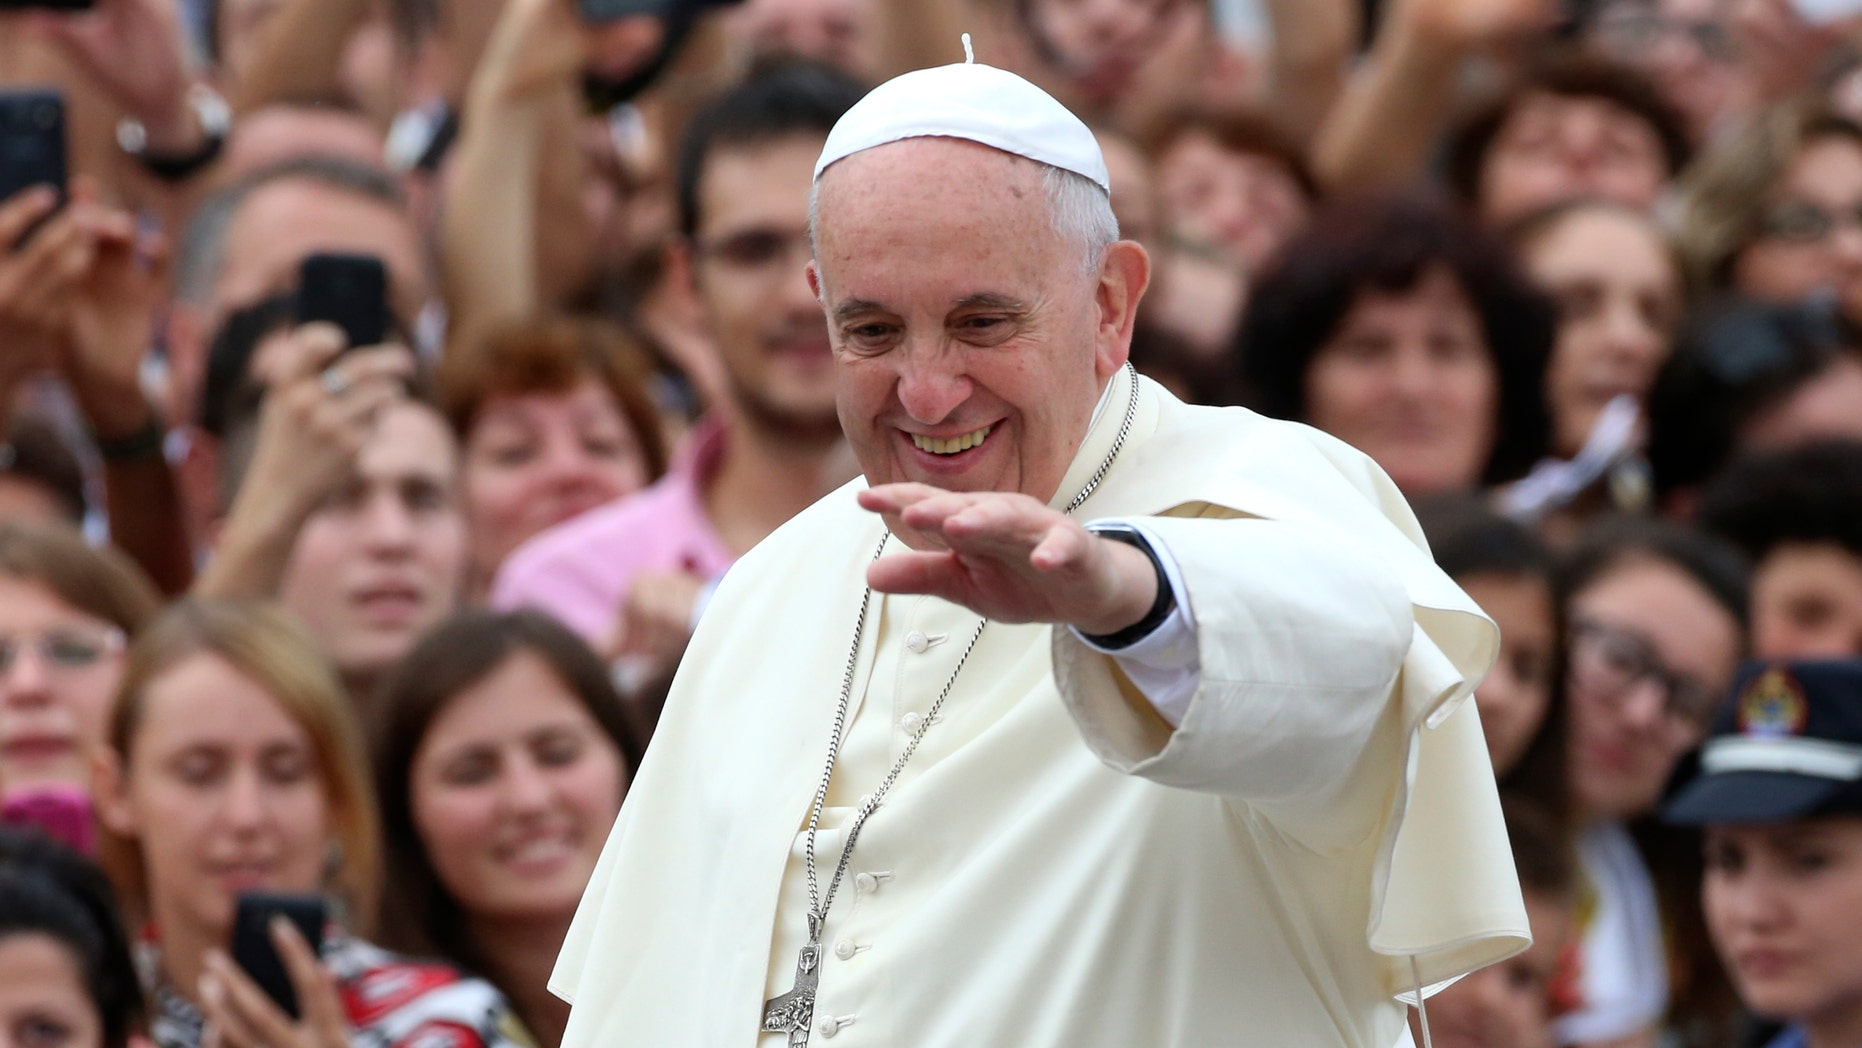 Pope Francis waves to faithful as he is driven through the crowd, in Mother Teresa Square, in Tirana, Sunday, Sept. 21, 2014. Pope Francis arrived Sunday in Albania on his first European trip, designed to highlight the Balkan nation's path from a brutal communist state where religion was banned to a model of Christian-Muslim coexistence for a world witnessing conflict in God's name. (AP Photo/Hector Pustina)